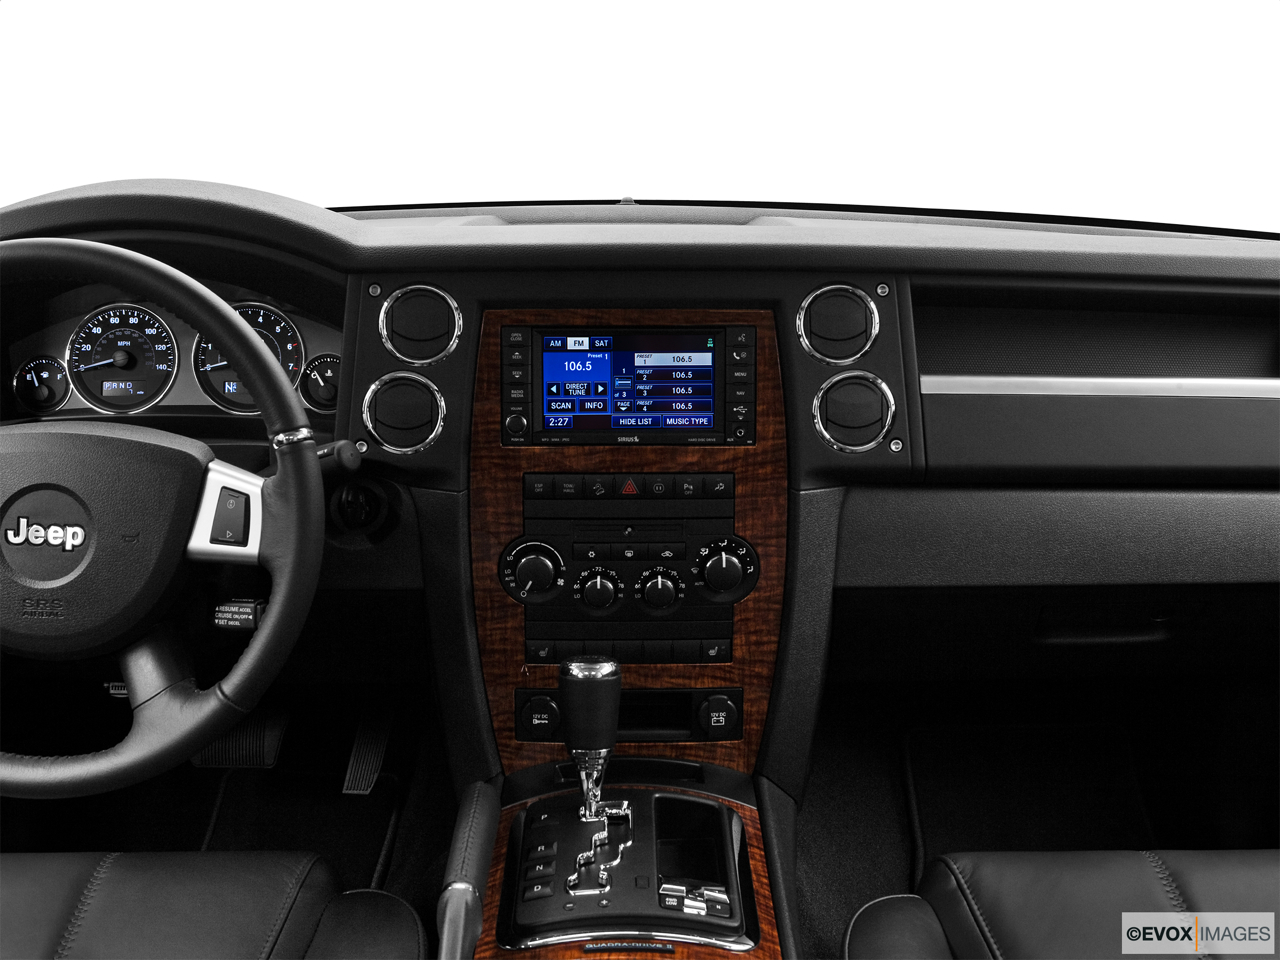 2010 Jeep Commander Limited 055 - no description